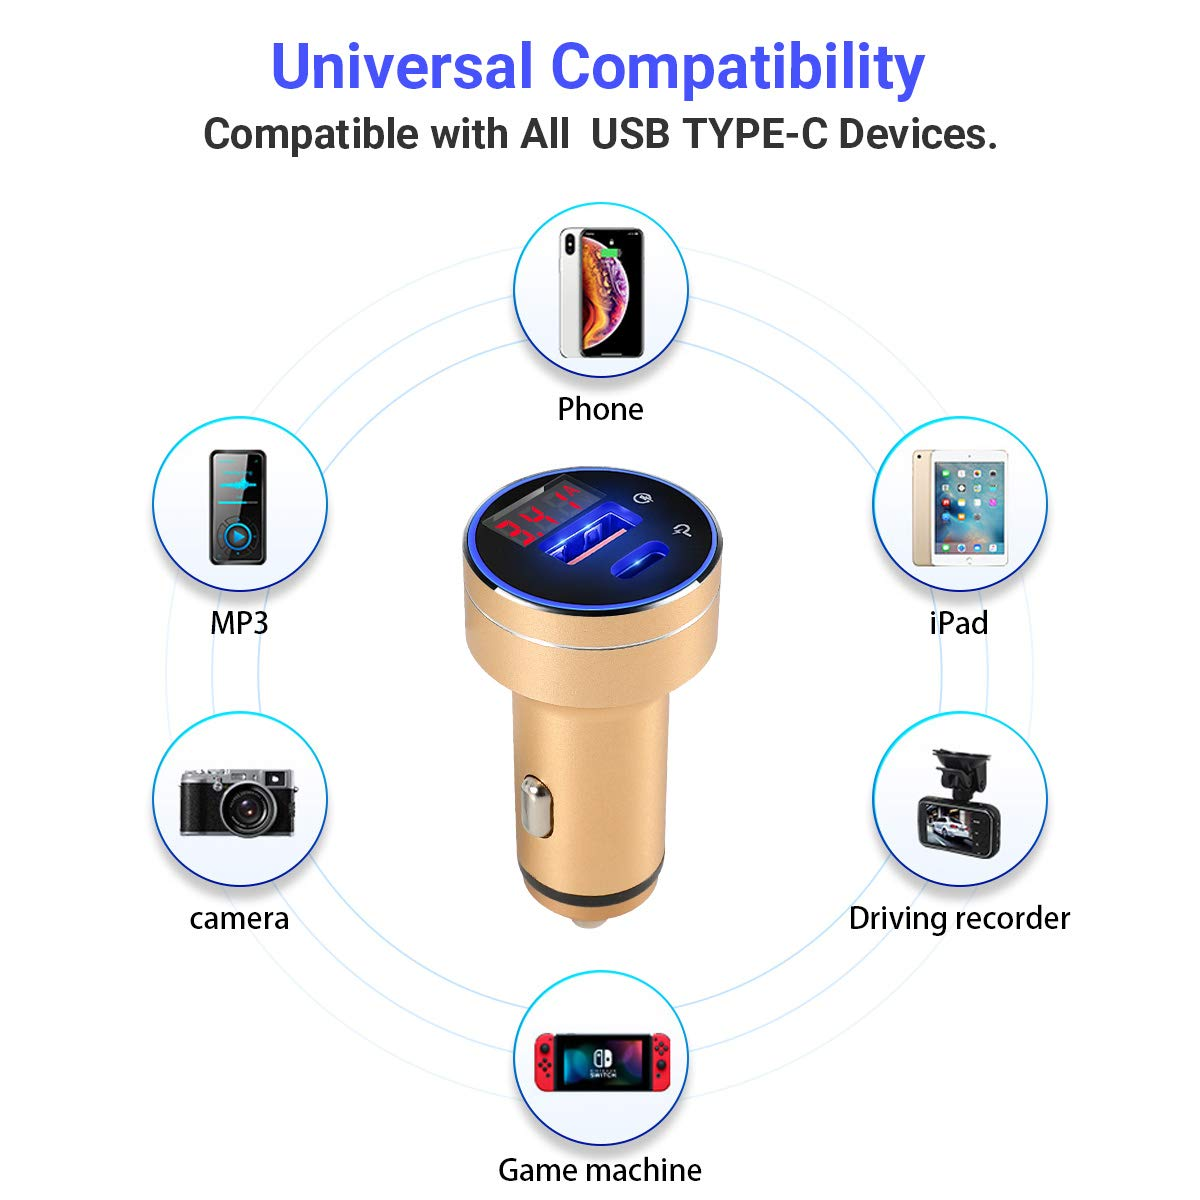 USB Type C Car Charger,Quick Charge 3.0 Adapter,45w 3.4A 2-Port with LED Compact Car Charger,Compatible with iPhone Xs\Max\XR Ipad Pro\Mini,Samsuny Galsxy Note9 and More.